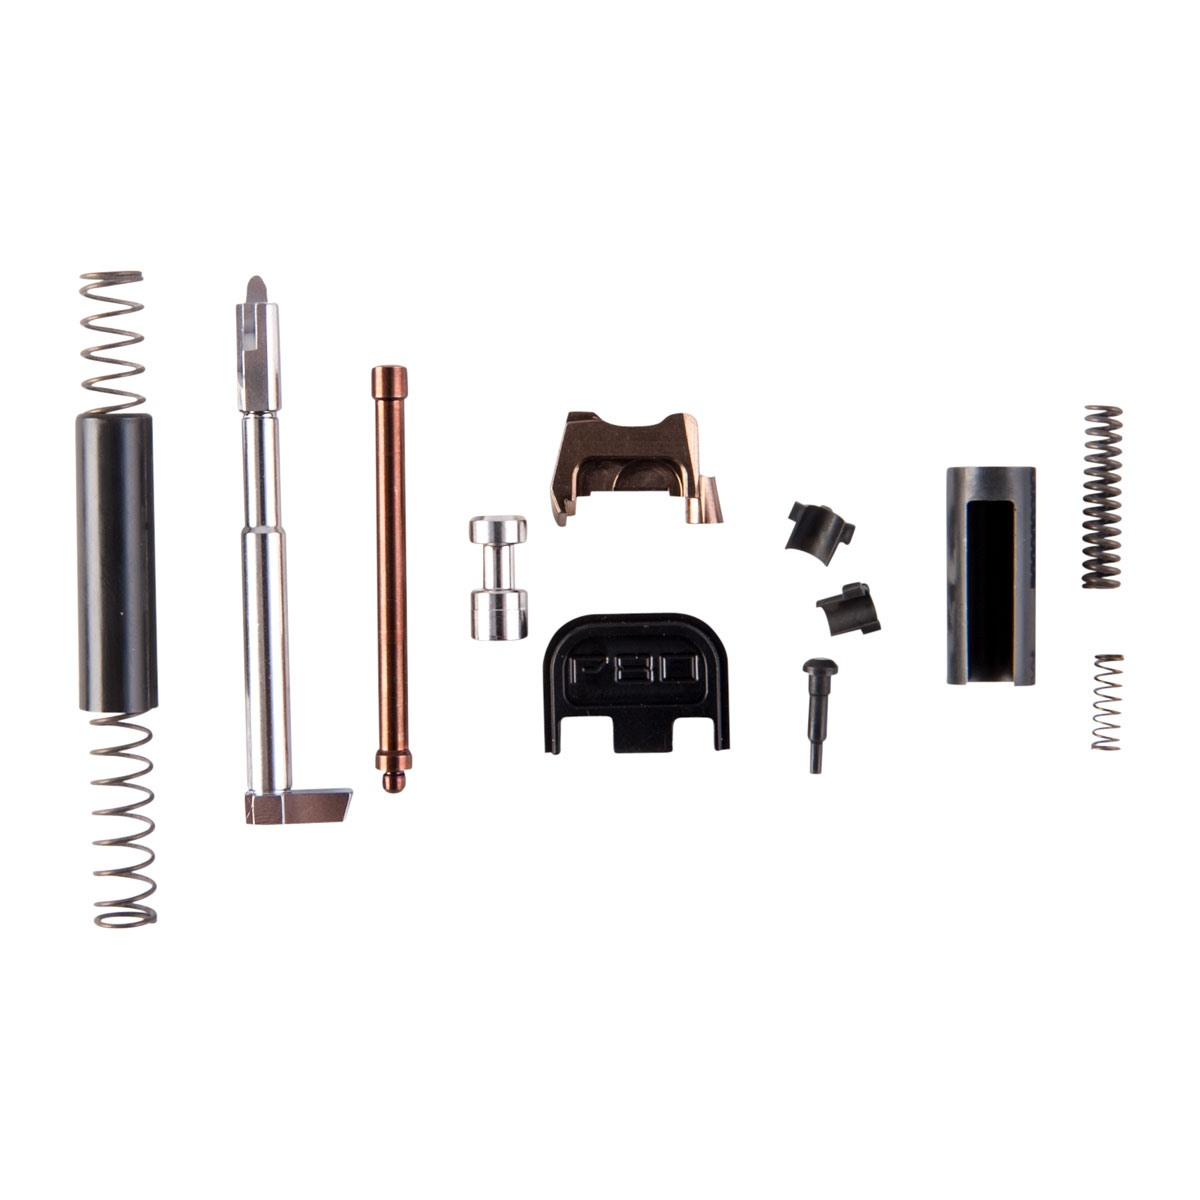 Slide Parts Kit for Glock™ 9mm, BLK/GRY